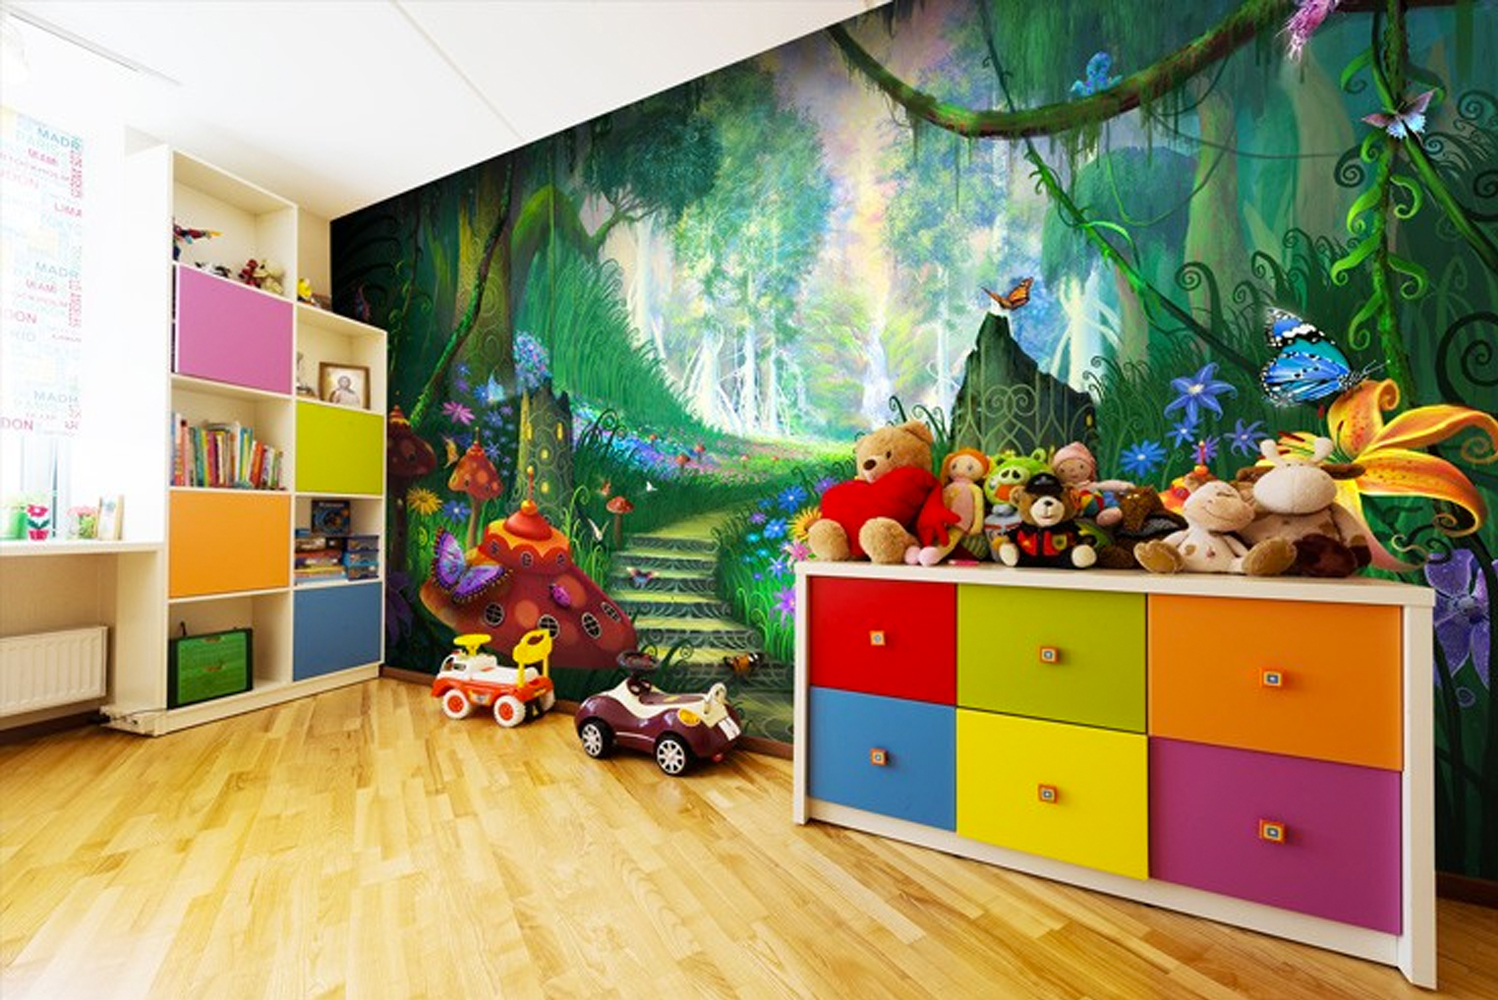 The offerings include murals depicting scenes such as forests, flowers, beaches and wildlife. There are also playful options for kids' rooms.